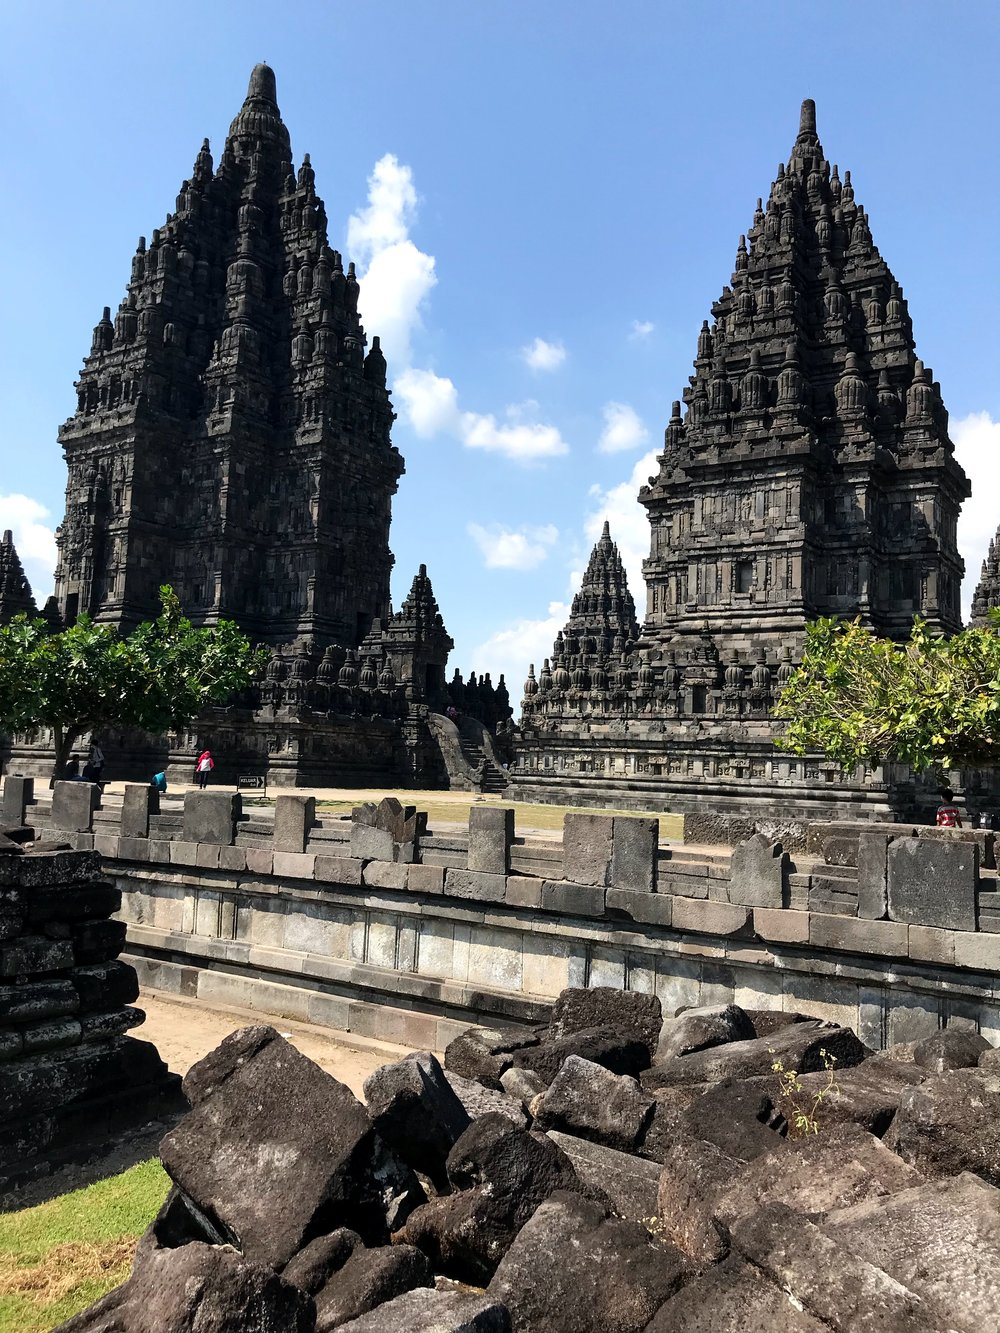 The peaks of the temples rise into the sky — a bit higher than Borobudur